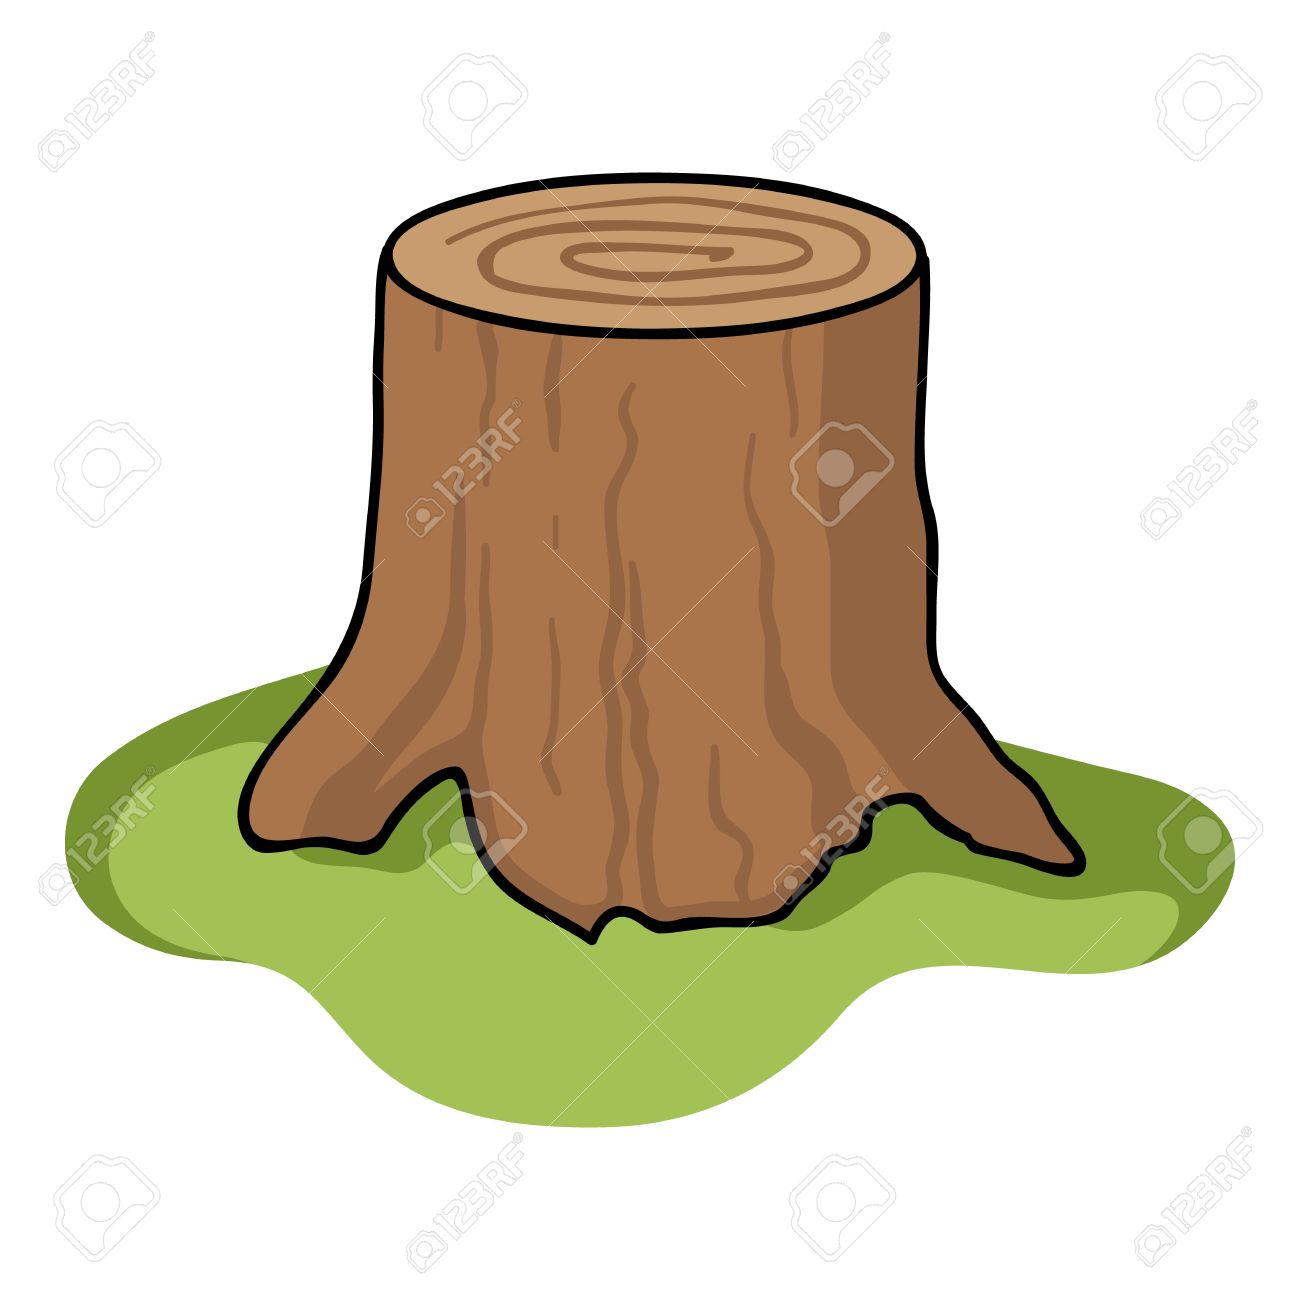 Tree Stump Icon In Cartoon Style Isolated On White Background Royalty Free Cliparts Vectors And Stock Illustration Image 64178670